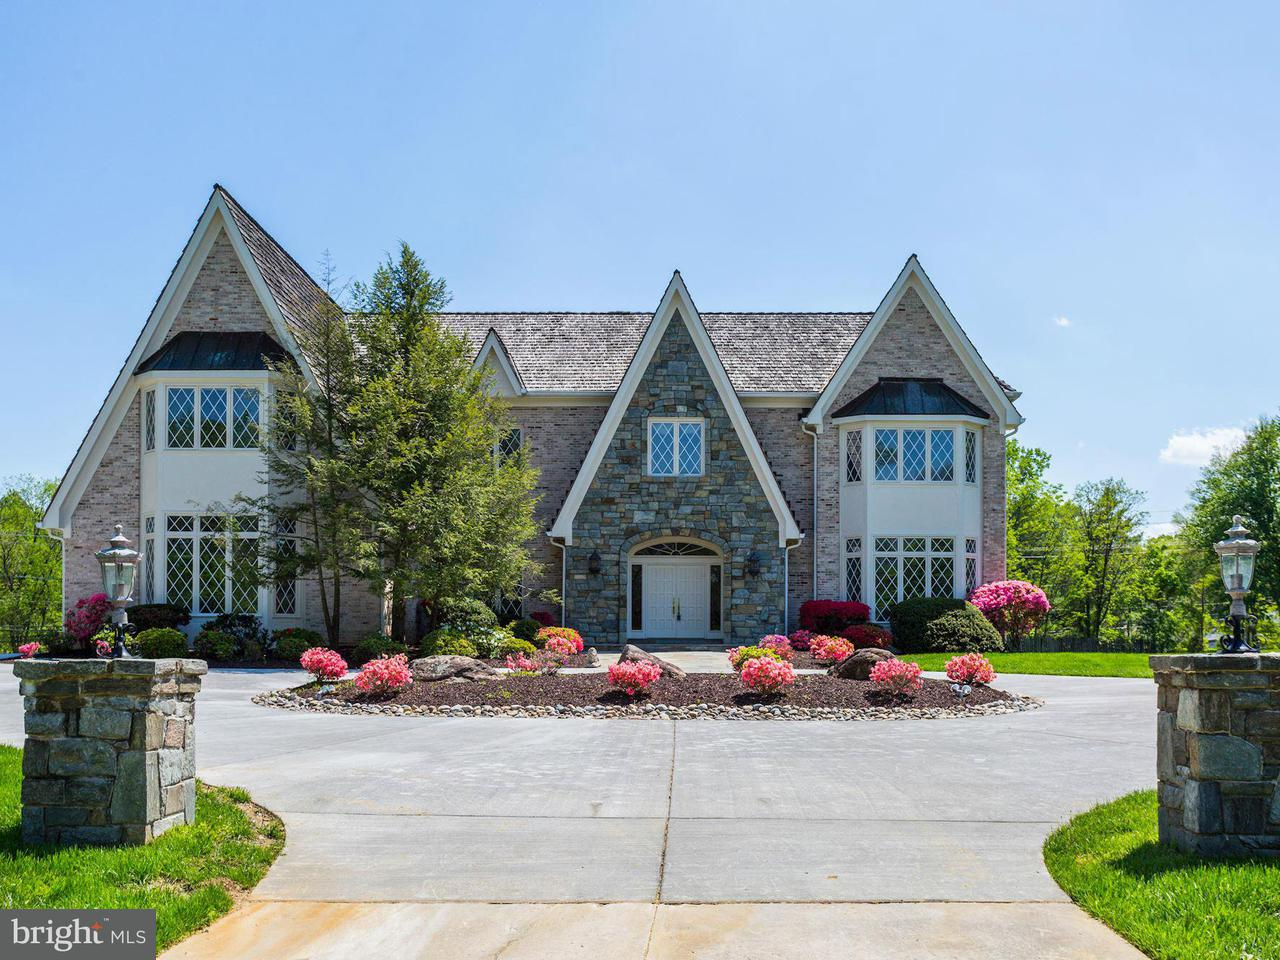 Single Family Home for Sale at 10400 BIT AND SPUR Lane 10400 BIT AND SPUR Lane Rockville, Maryland 20854 United States